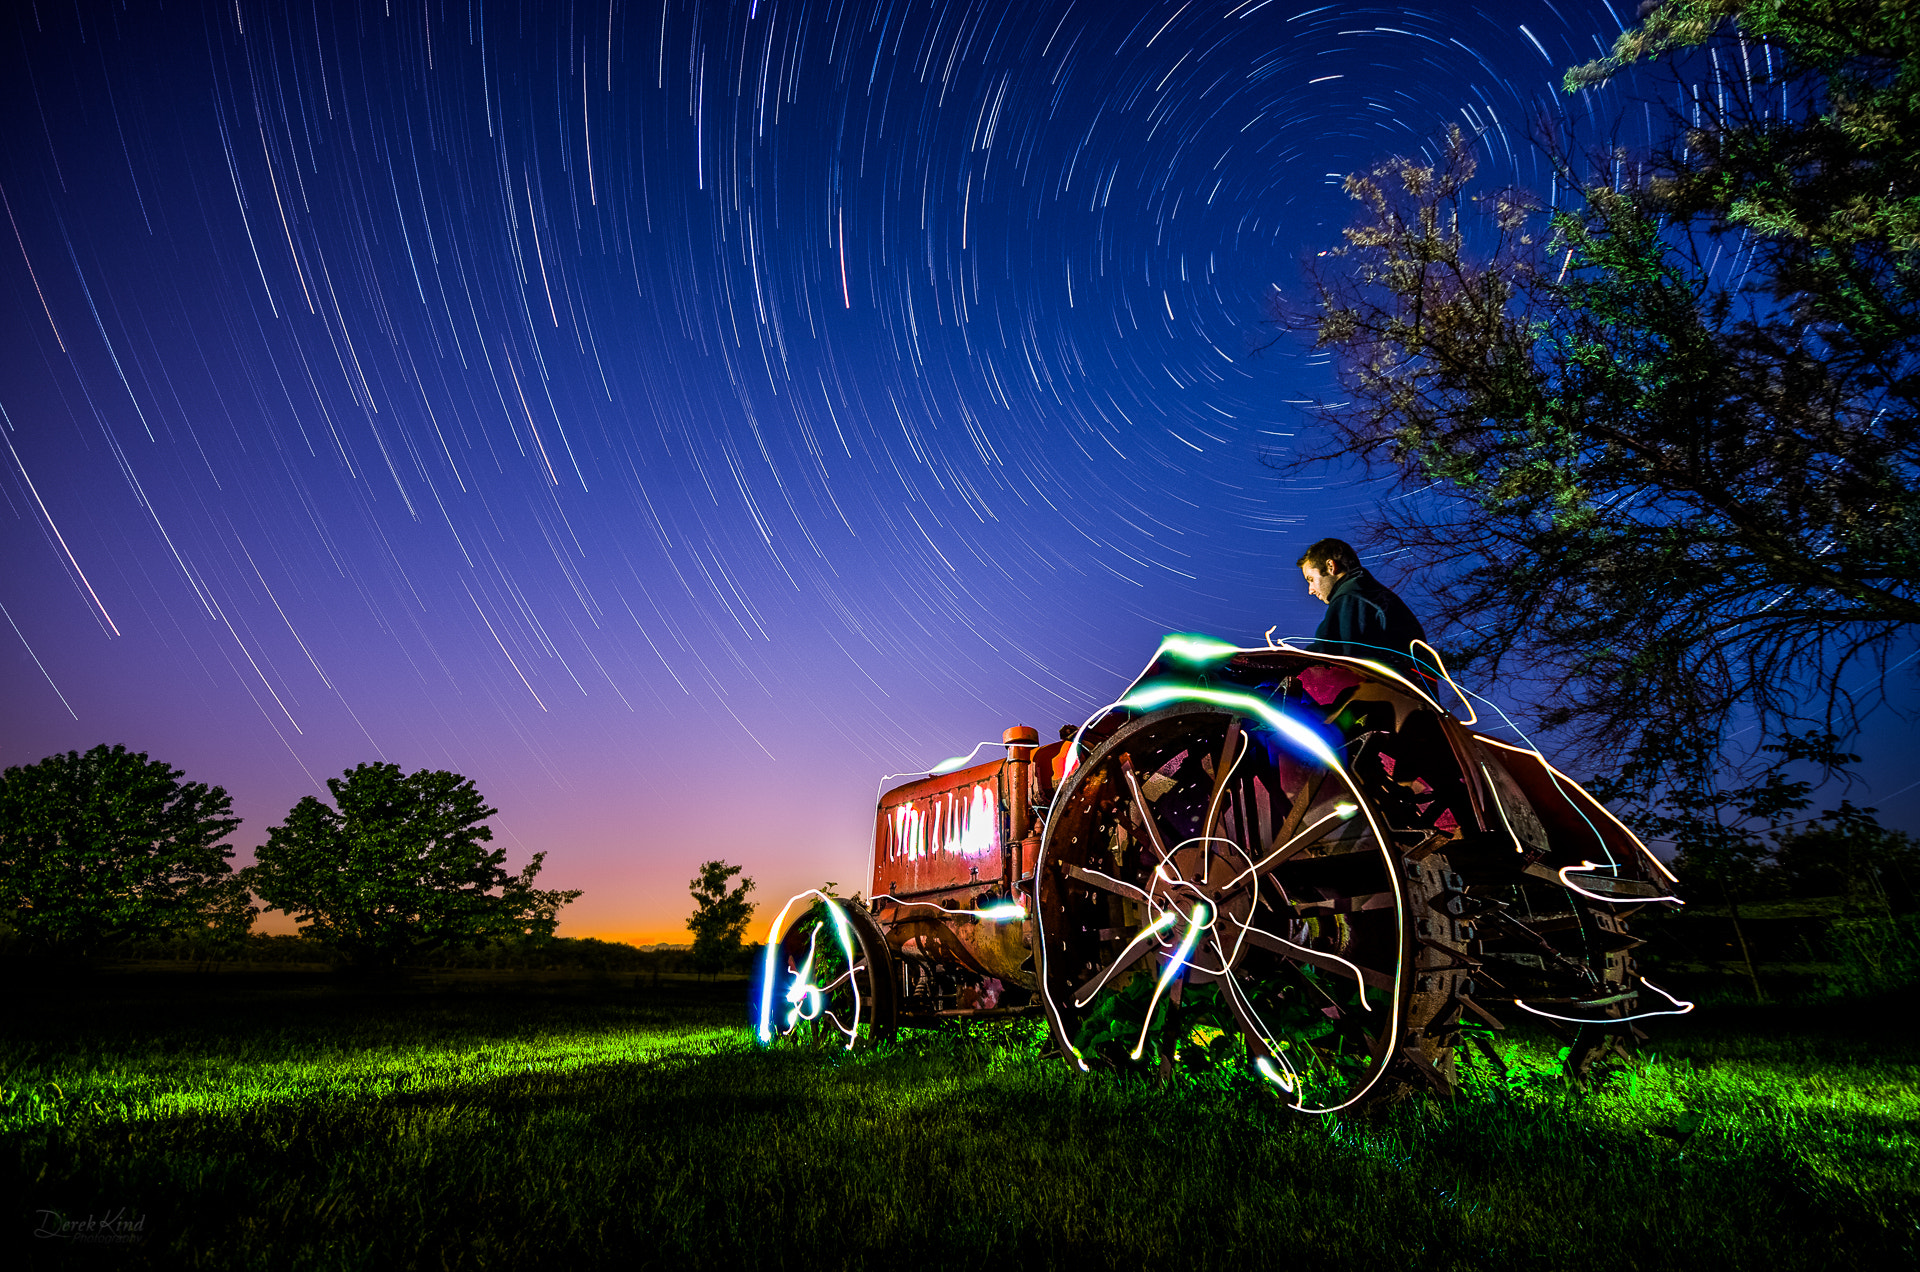 Photograph Farming by Starlight by Derek Kind on 500px